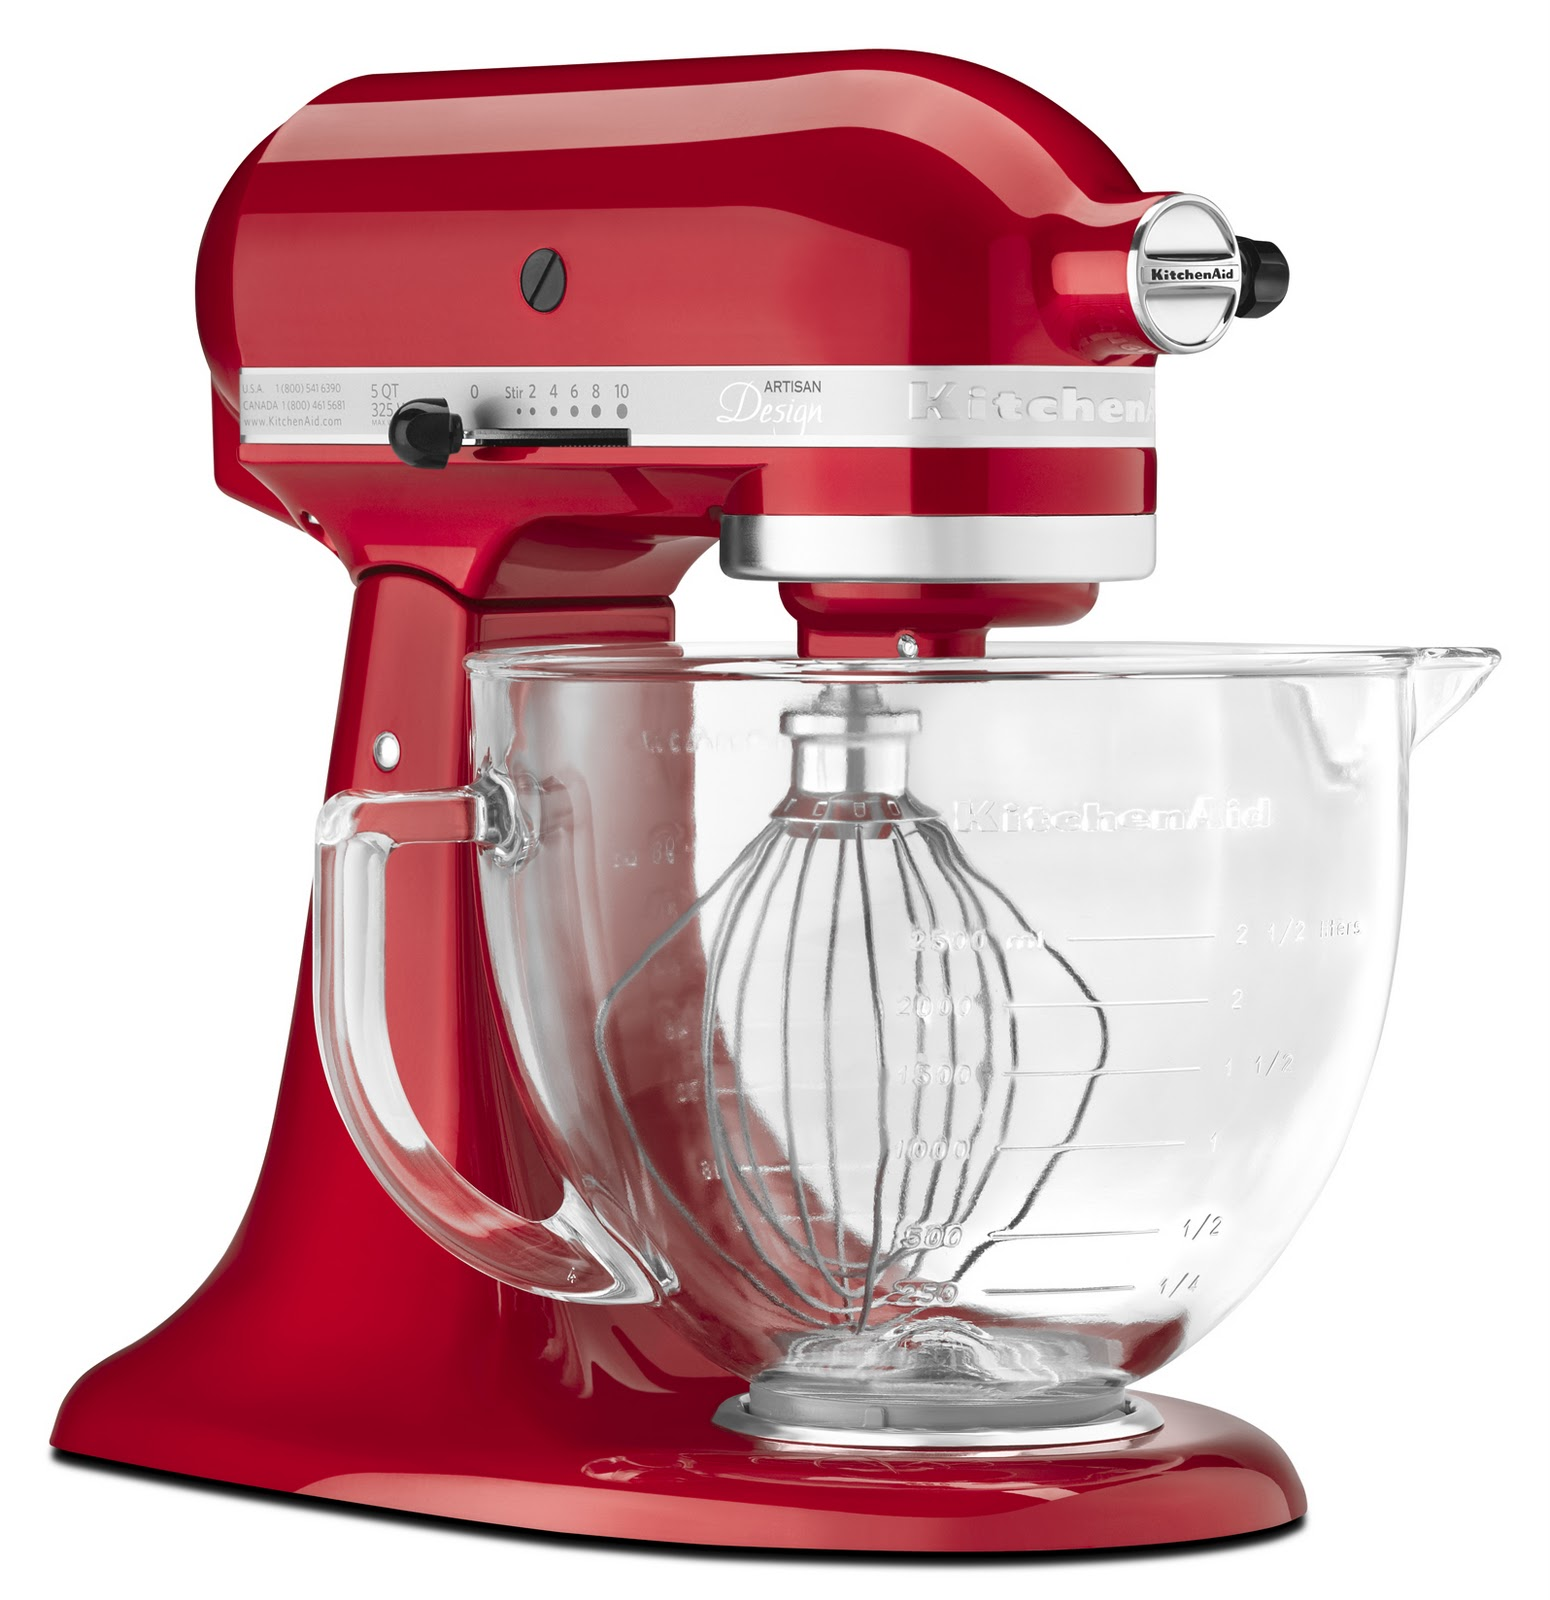 Mixer Kitchen: KitchenAid's Artisan Stand Mixer